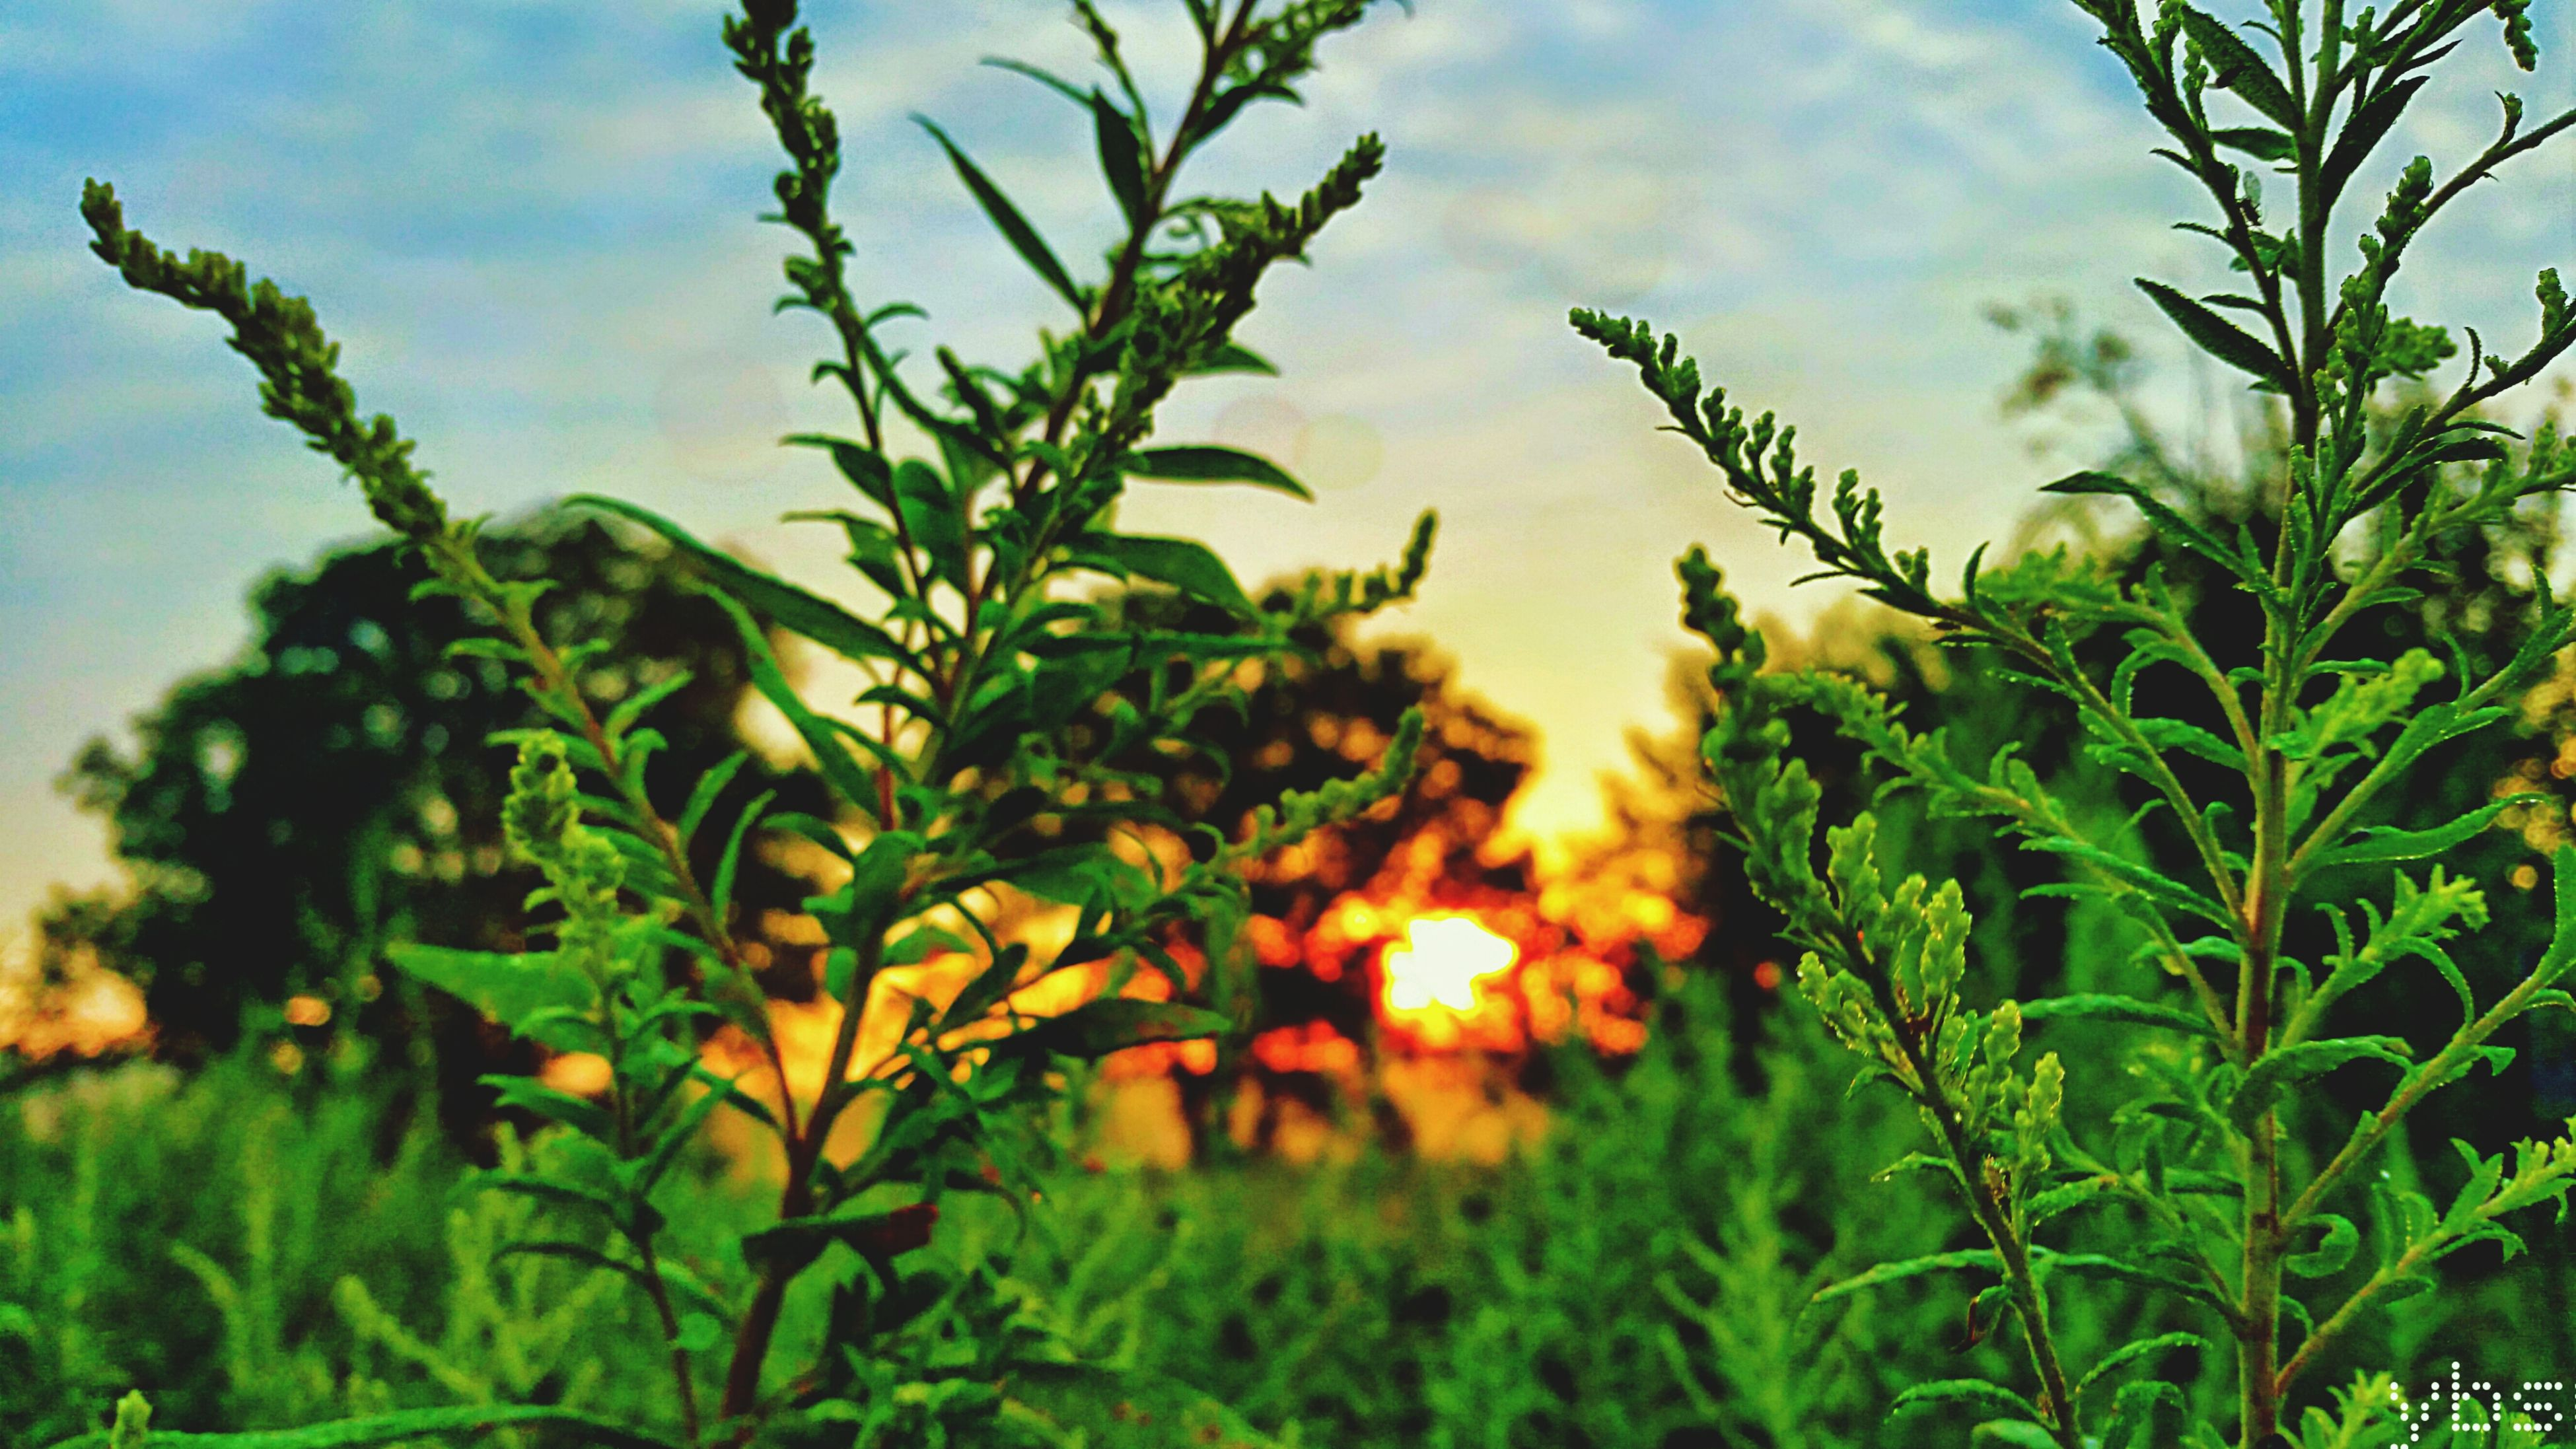 growth, plant, leaf, sunset, sun, sky, green color, nature, beauty in nature, sunlight, tranquility, tree, low angle view, focus on foreground, close-up, growing, outdoors, no people, sunbeam, freshness